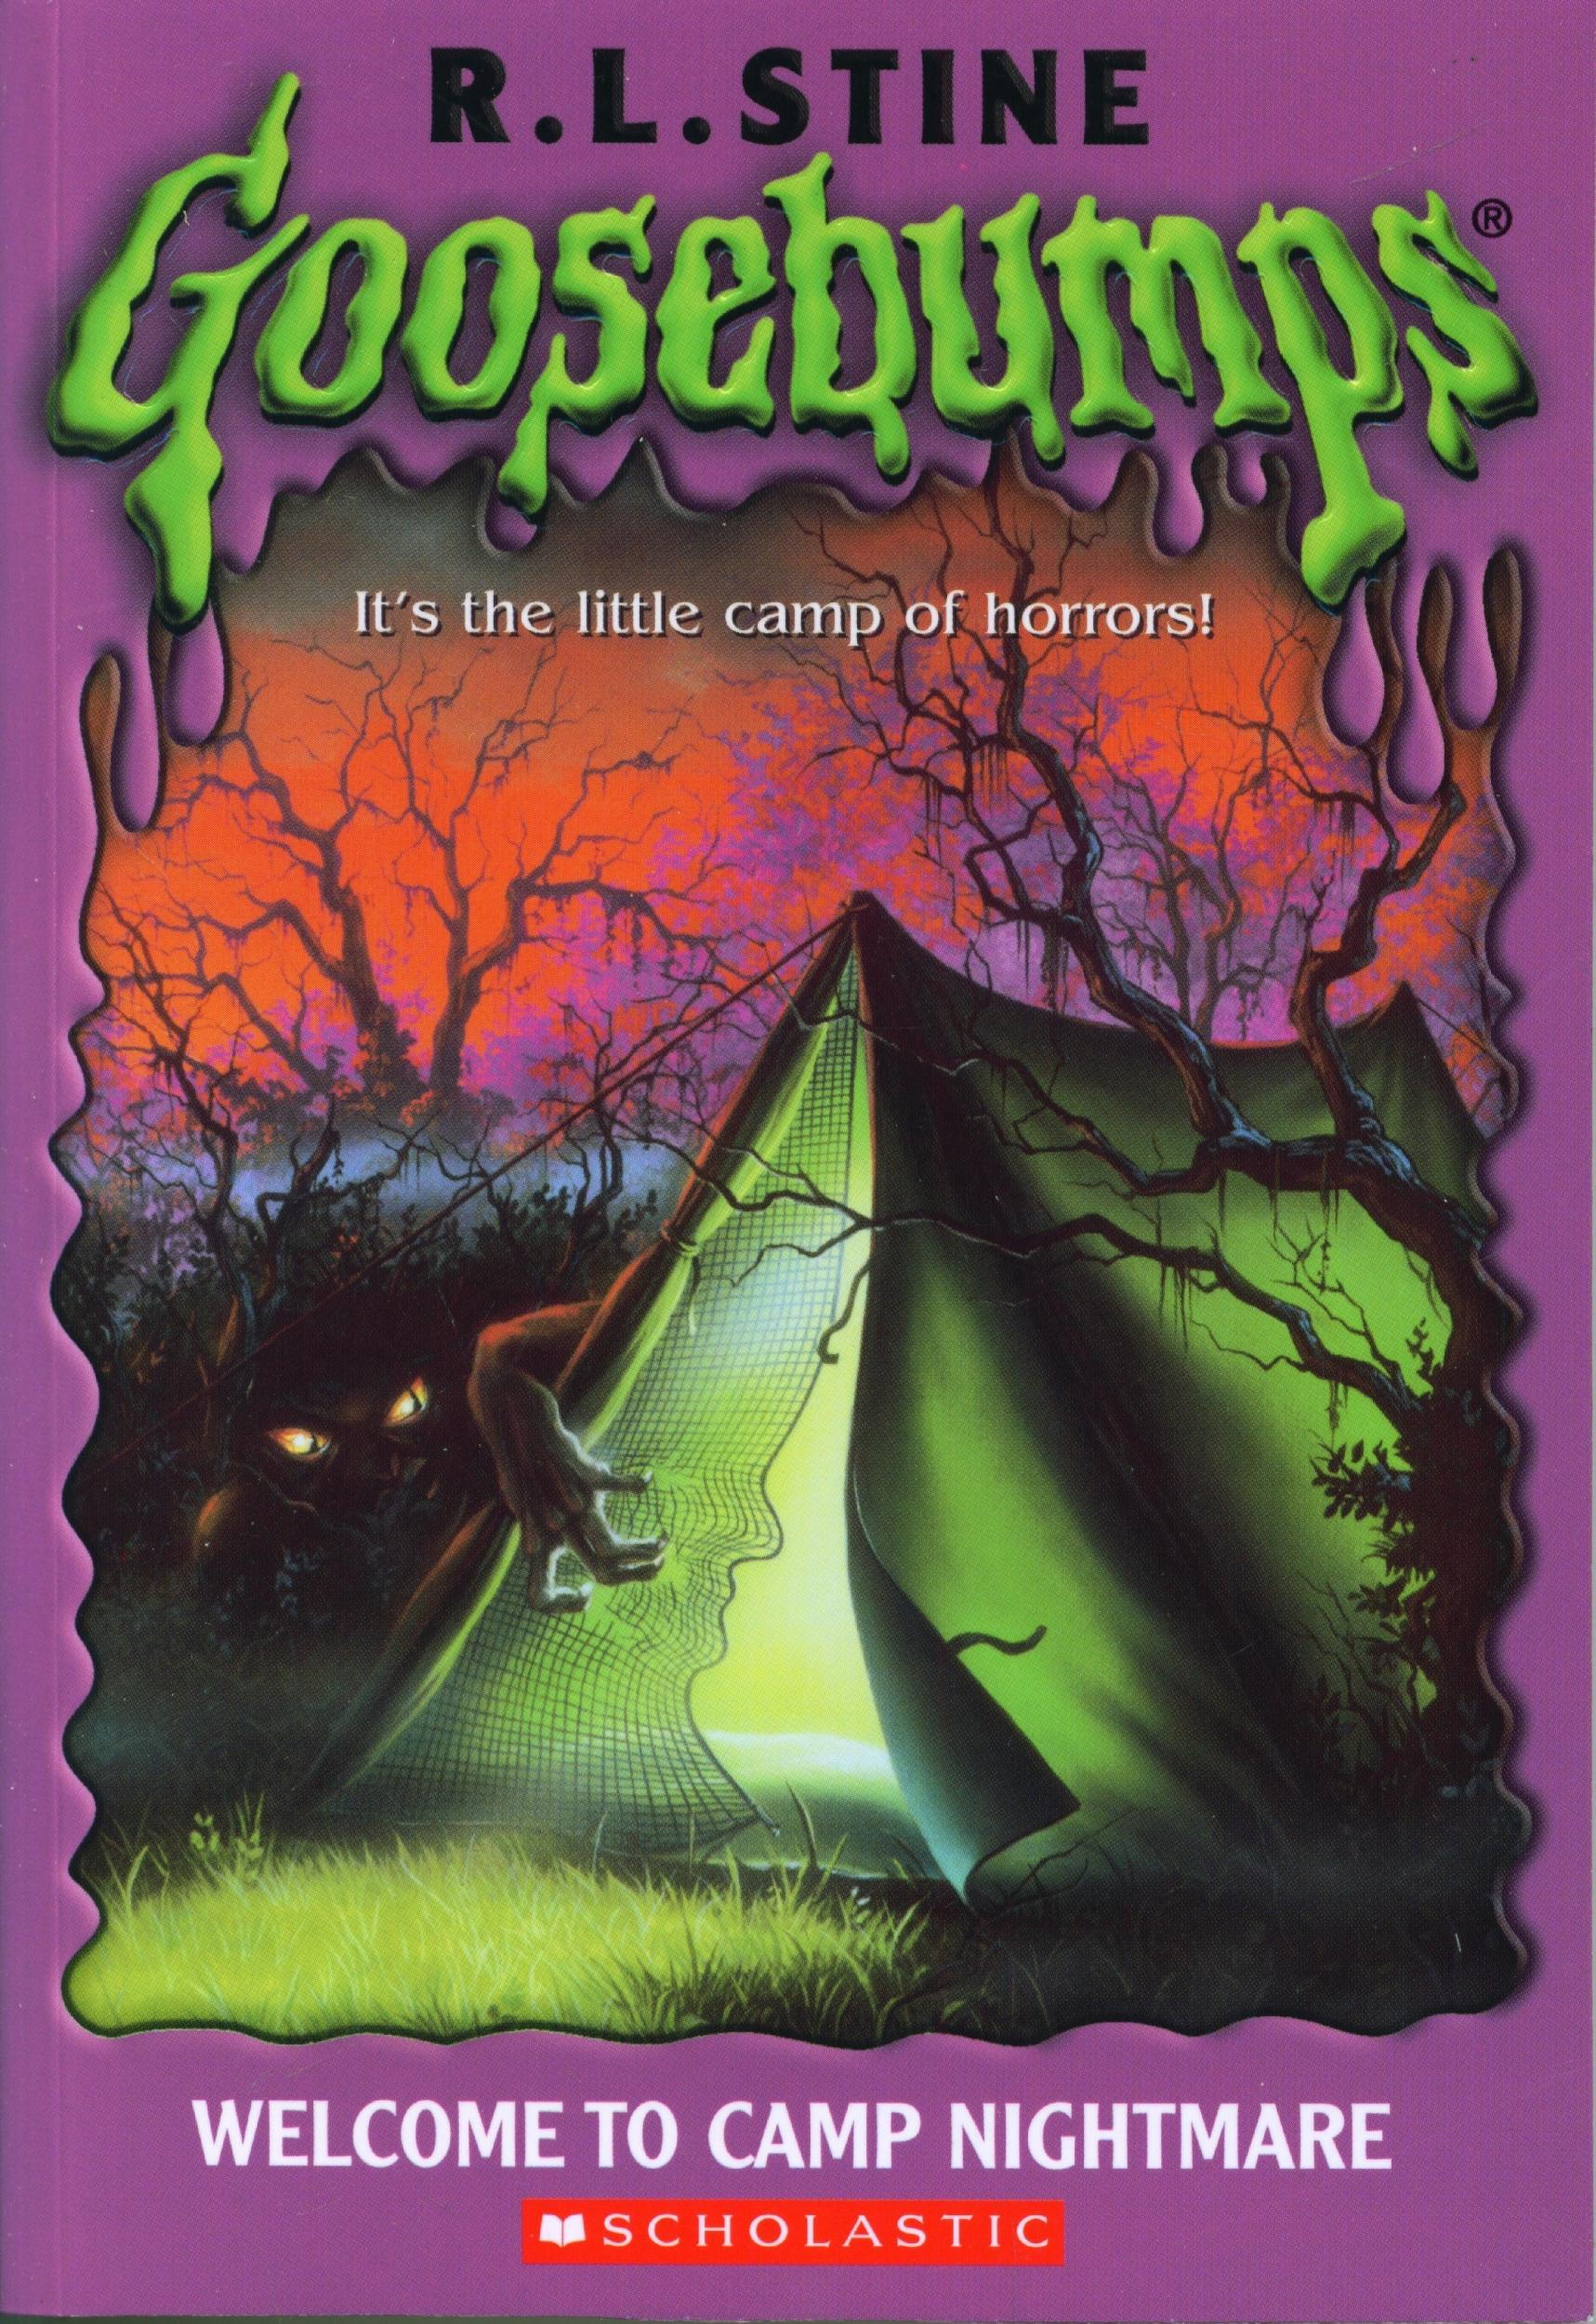 13 Best Goosebumps Books That Ruined Your Childhood The Independent